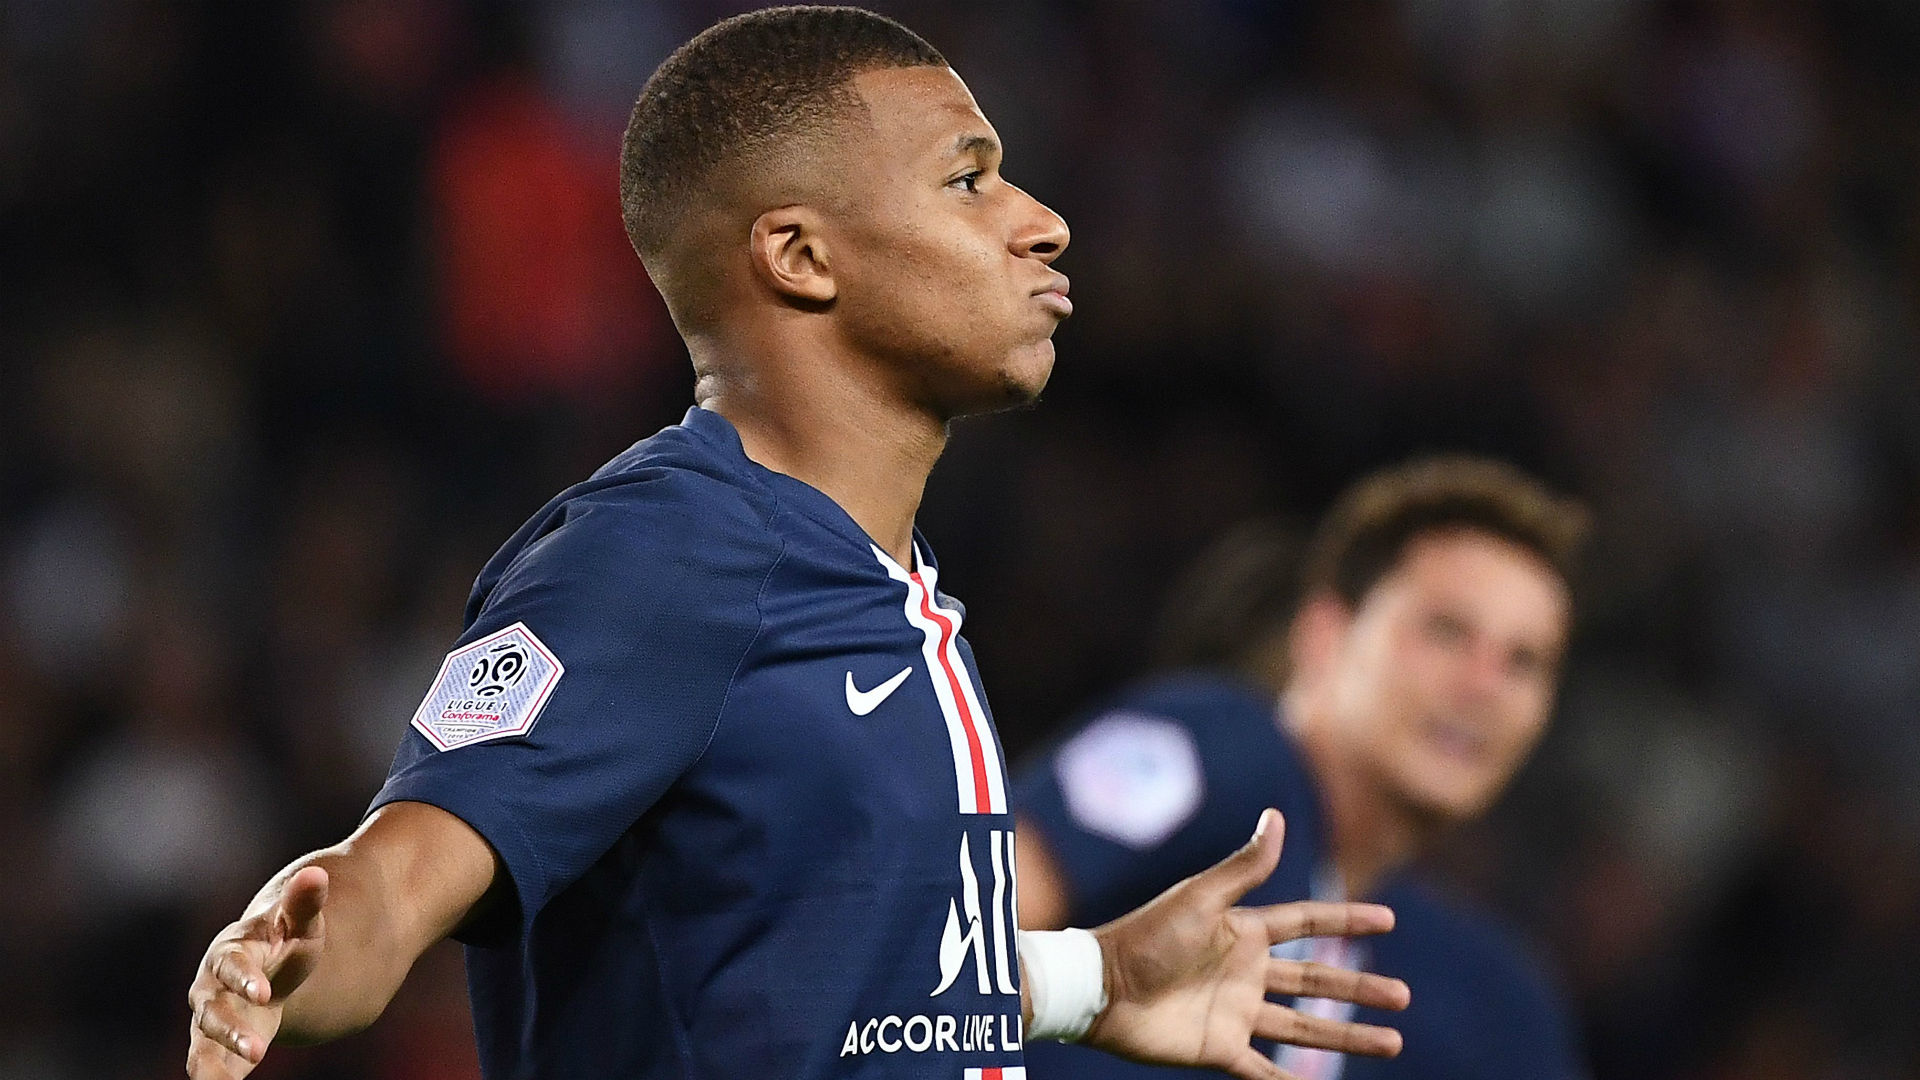 Mbappe a 'real killer' for PSG, says Diallo